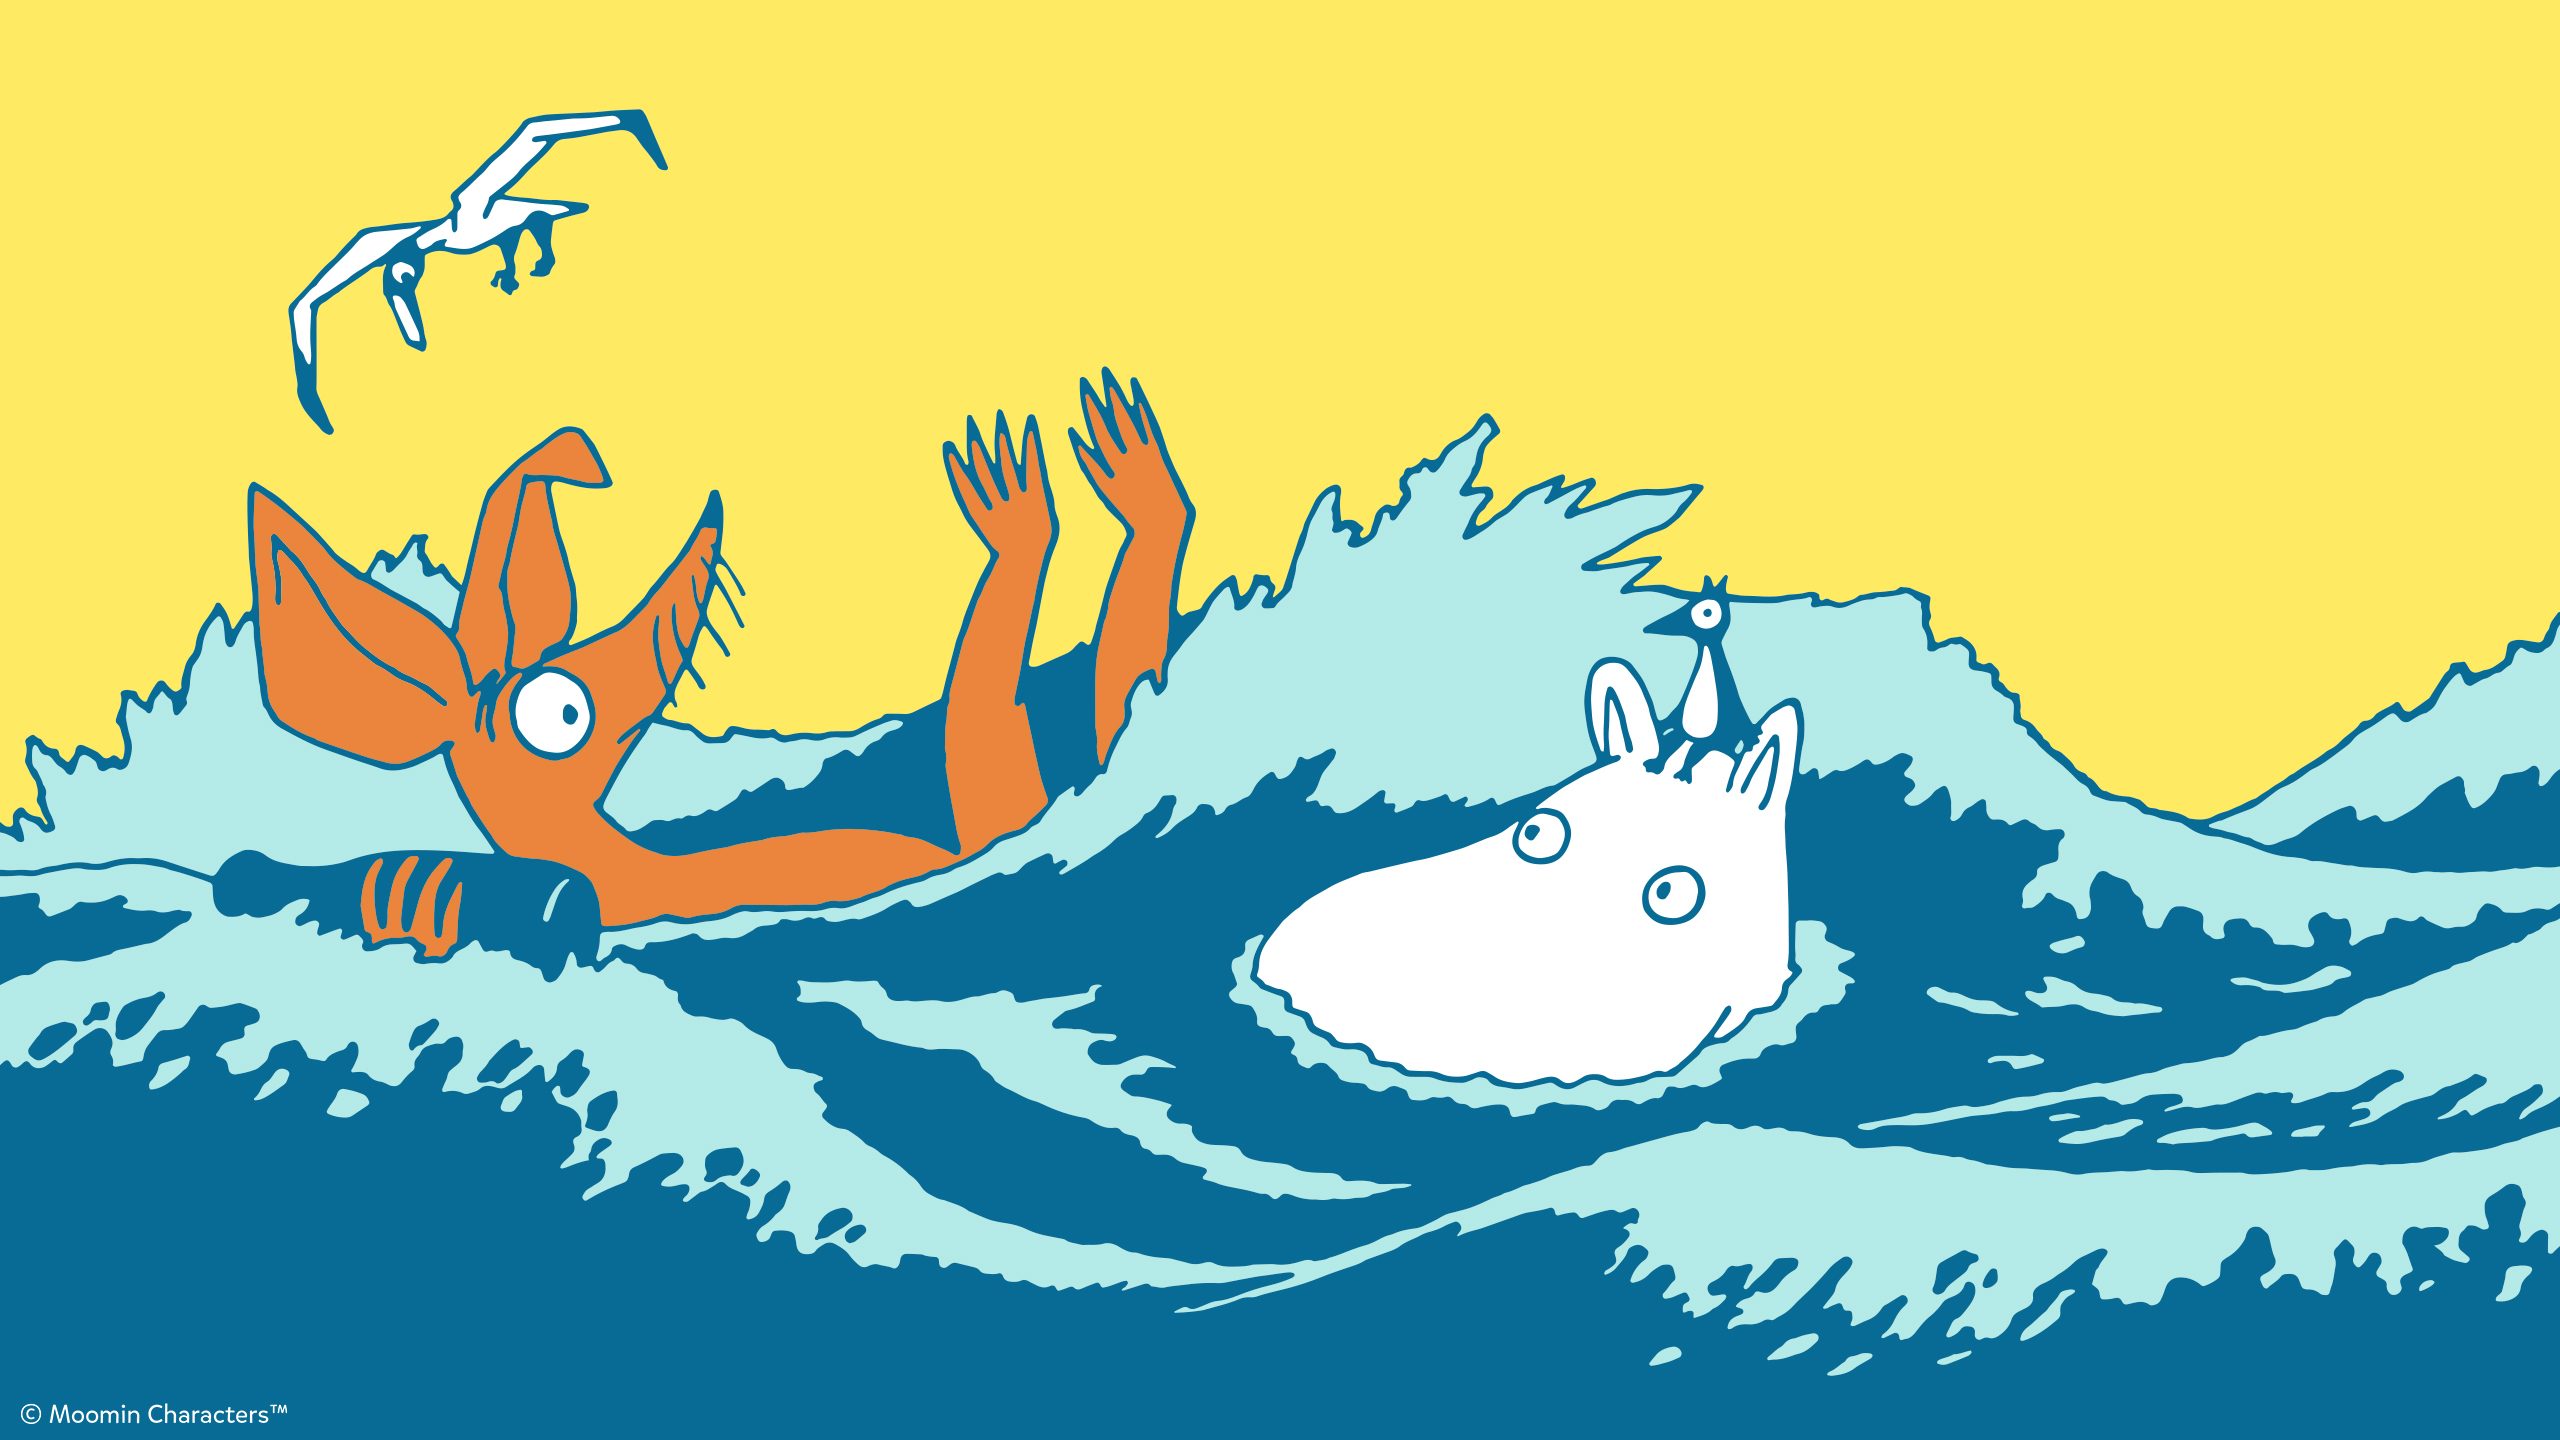 Show Your Support For Oursea With Free Moomin Wallpapers Moomin